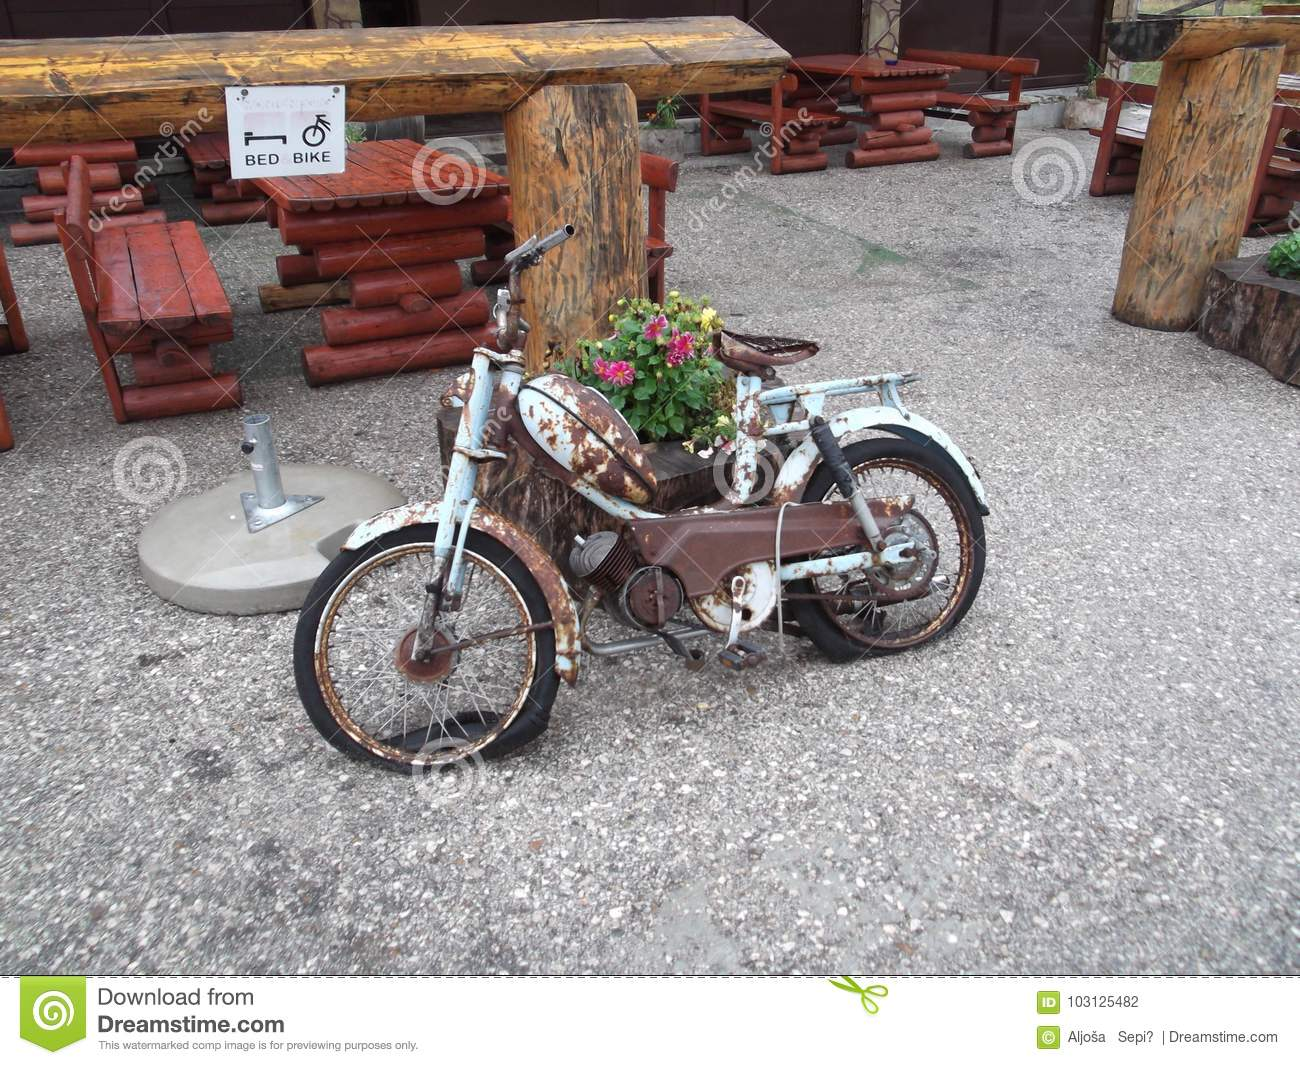 The Old rusty motorbike serving as a decoration